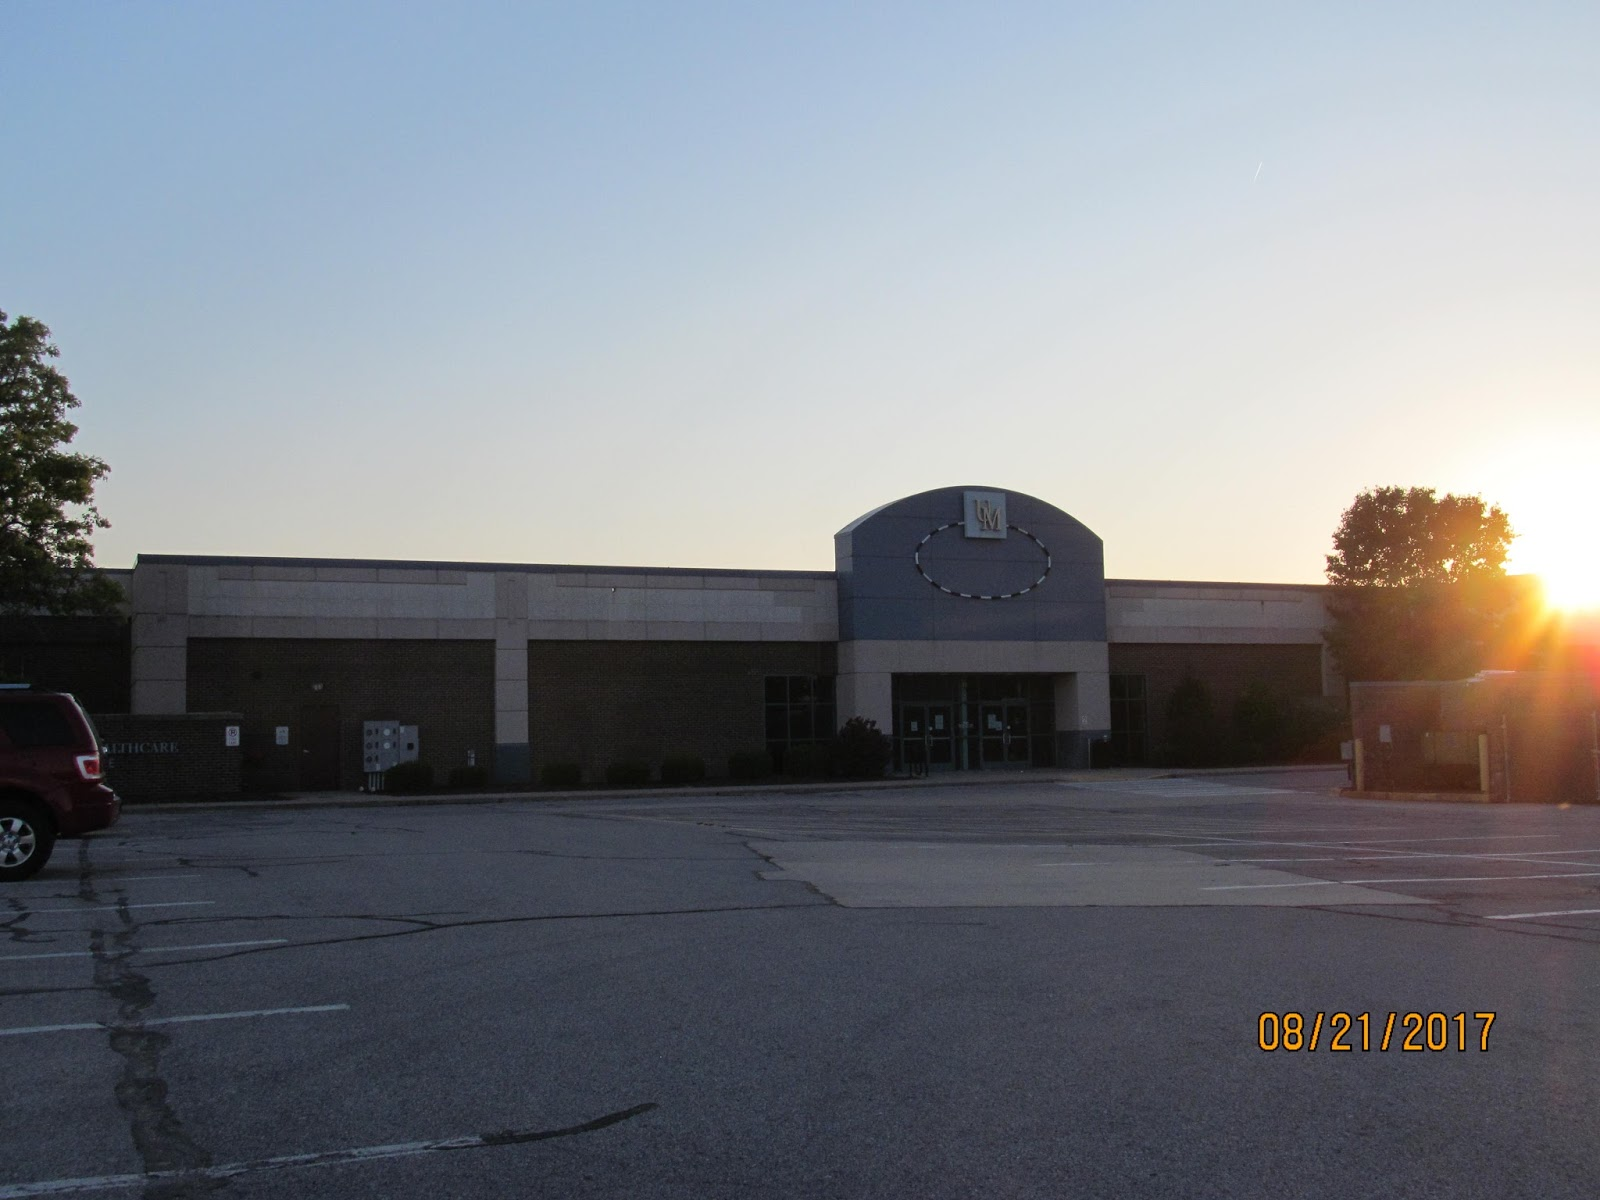 trip to the mall: university mall- (carbondale, il)